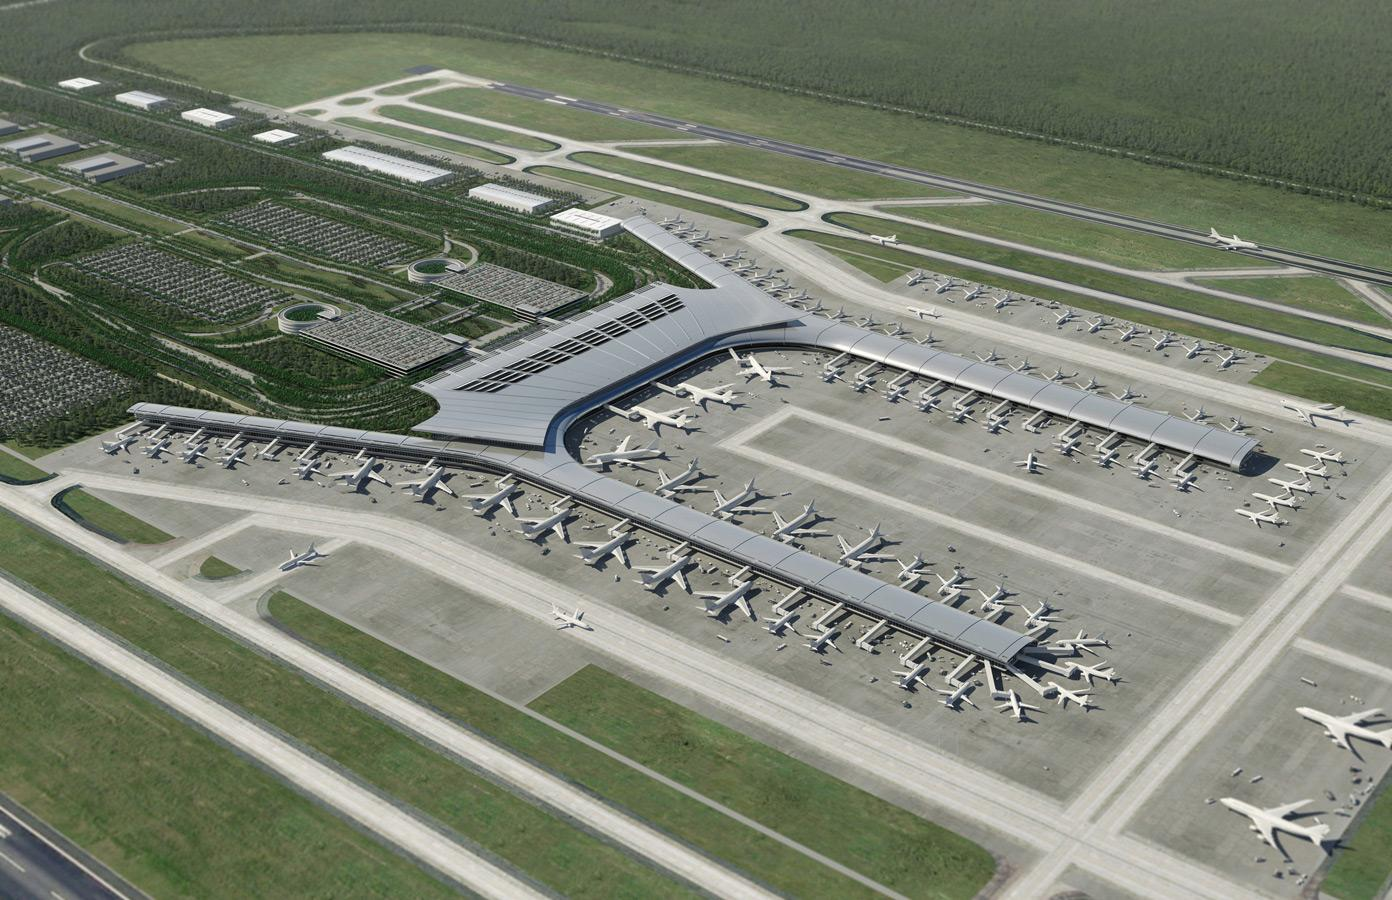 Work : Aerial Illustration - Airport Master Plan : Leif Peterson Design : Minneapolis Landscape ...